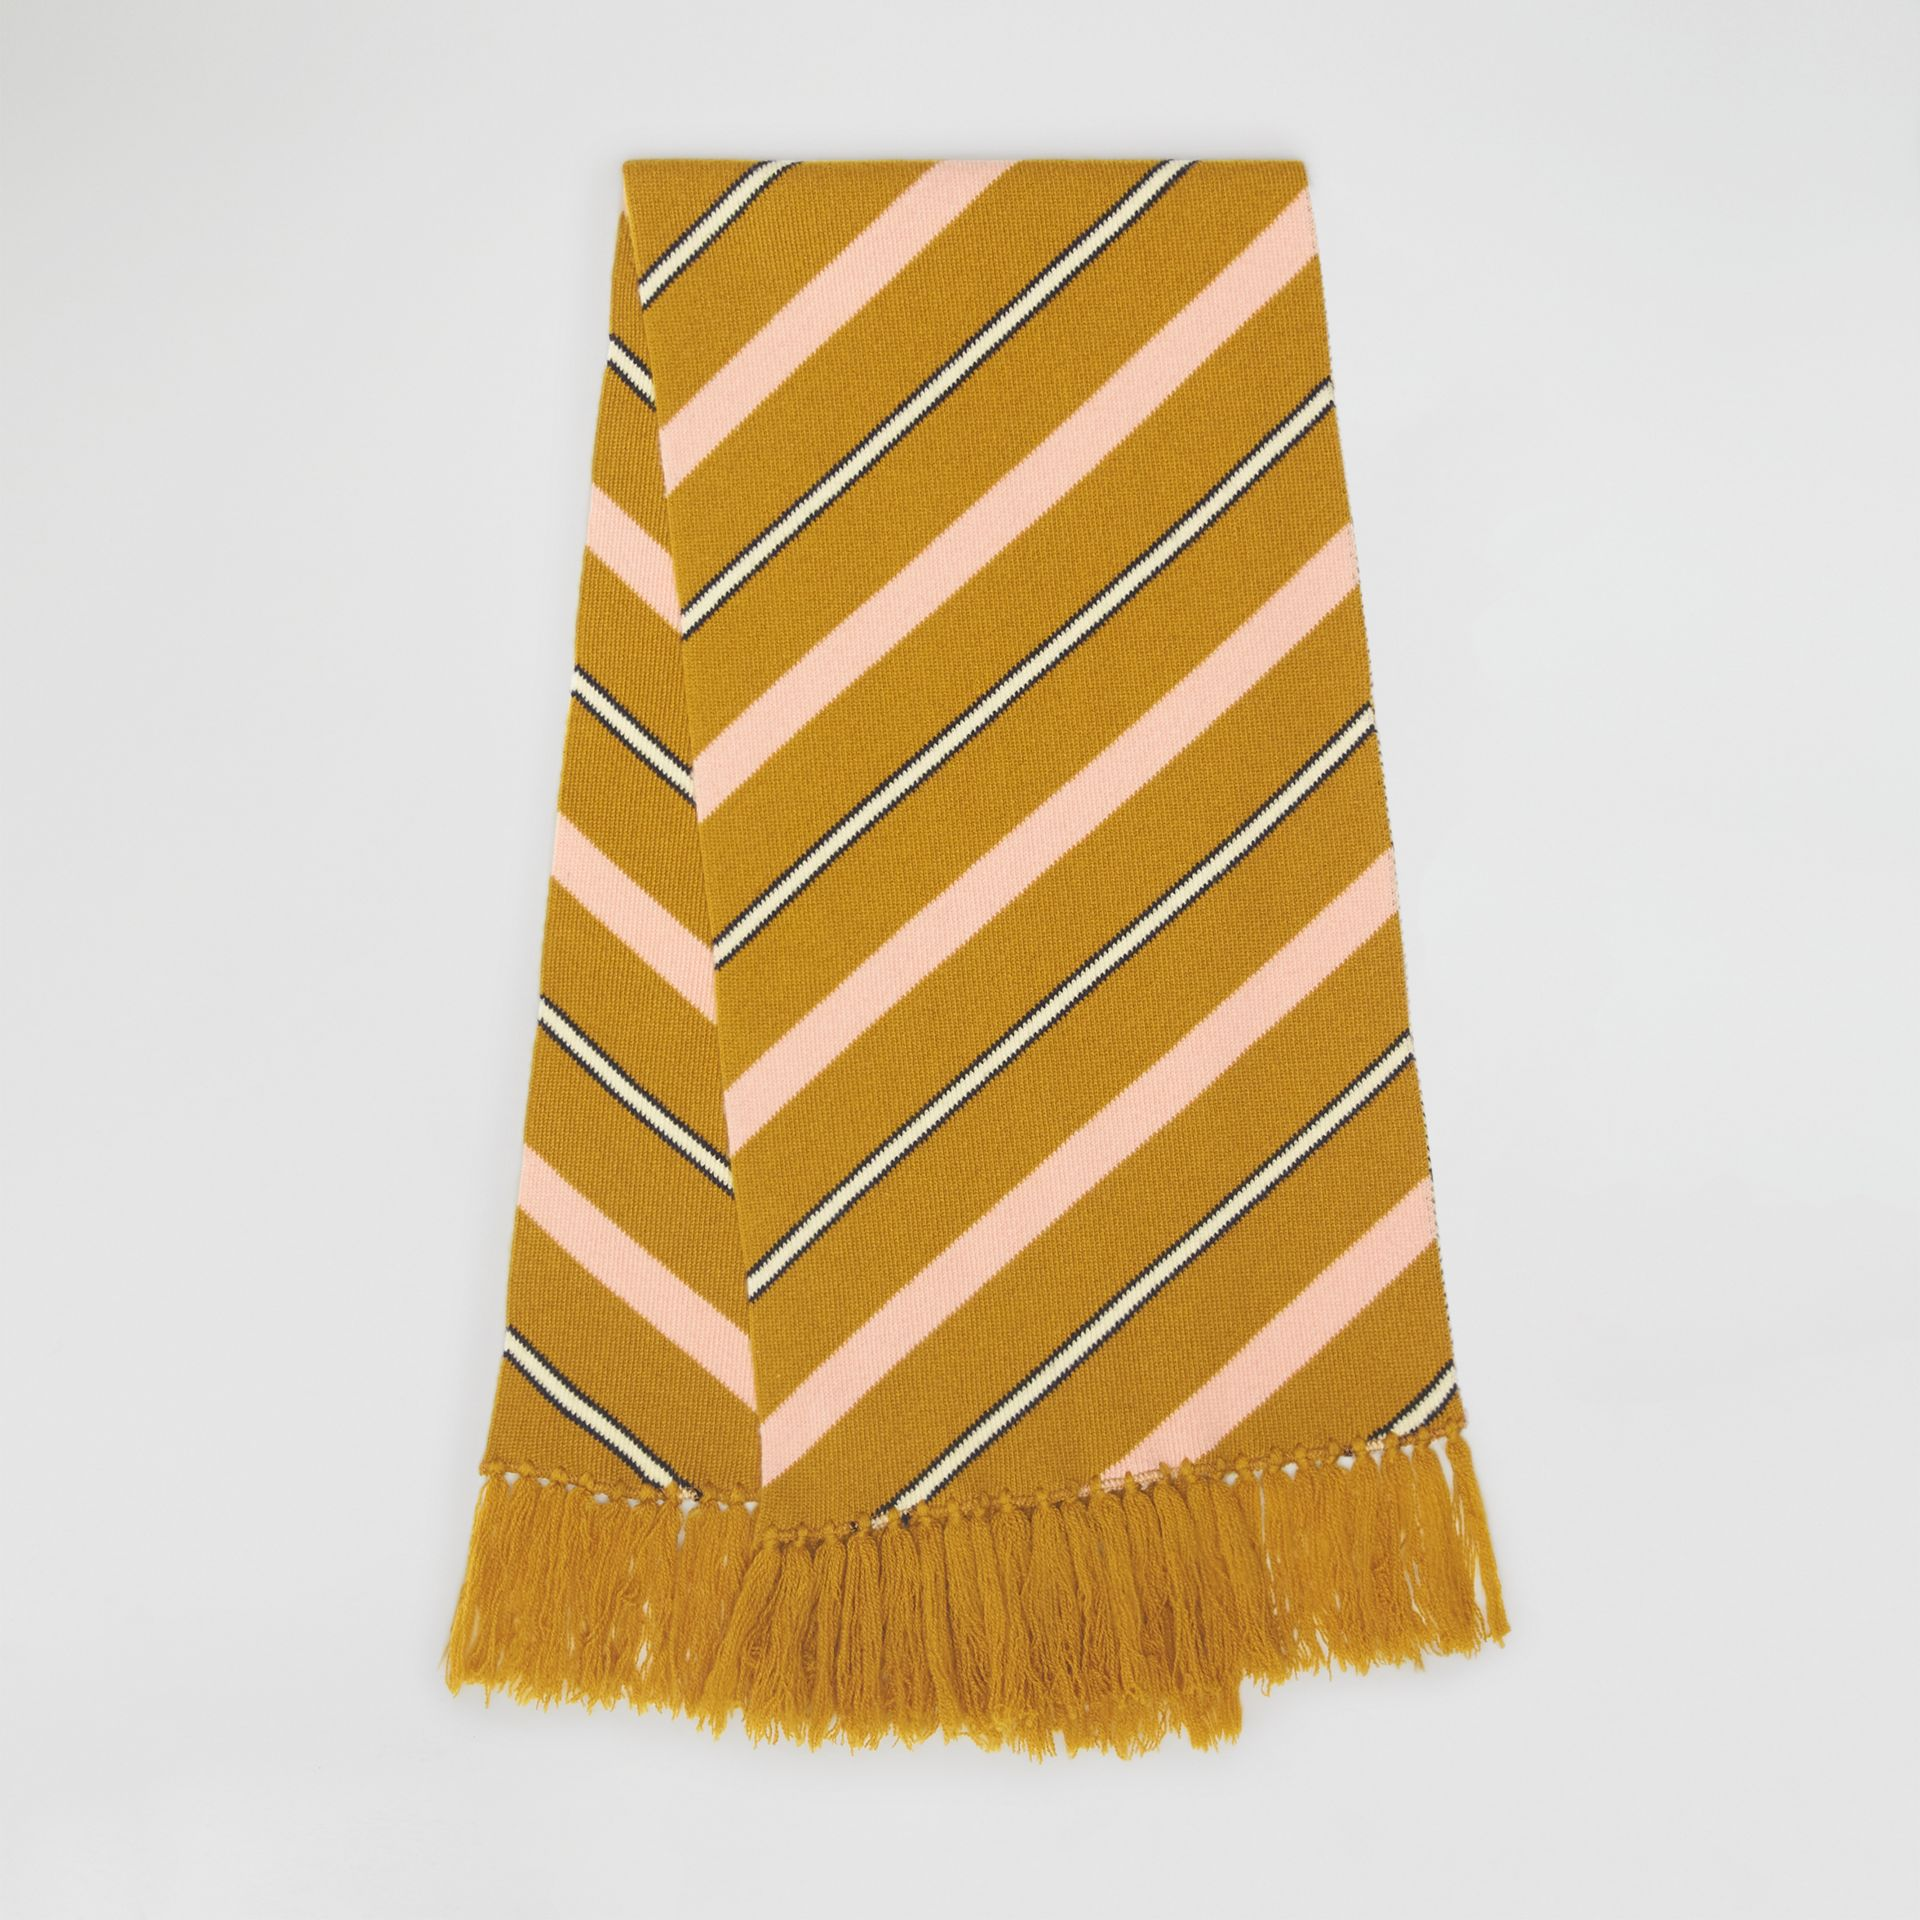 Tri-tone Striped Wool Cashmere Scarf in Dusty Yellow | Burberry - gallery image 6